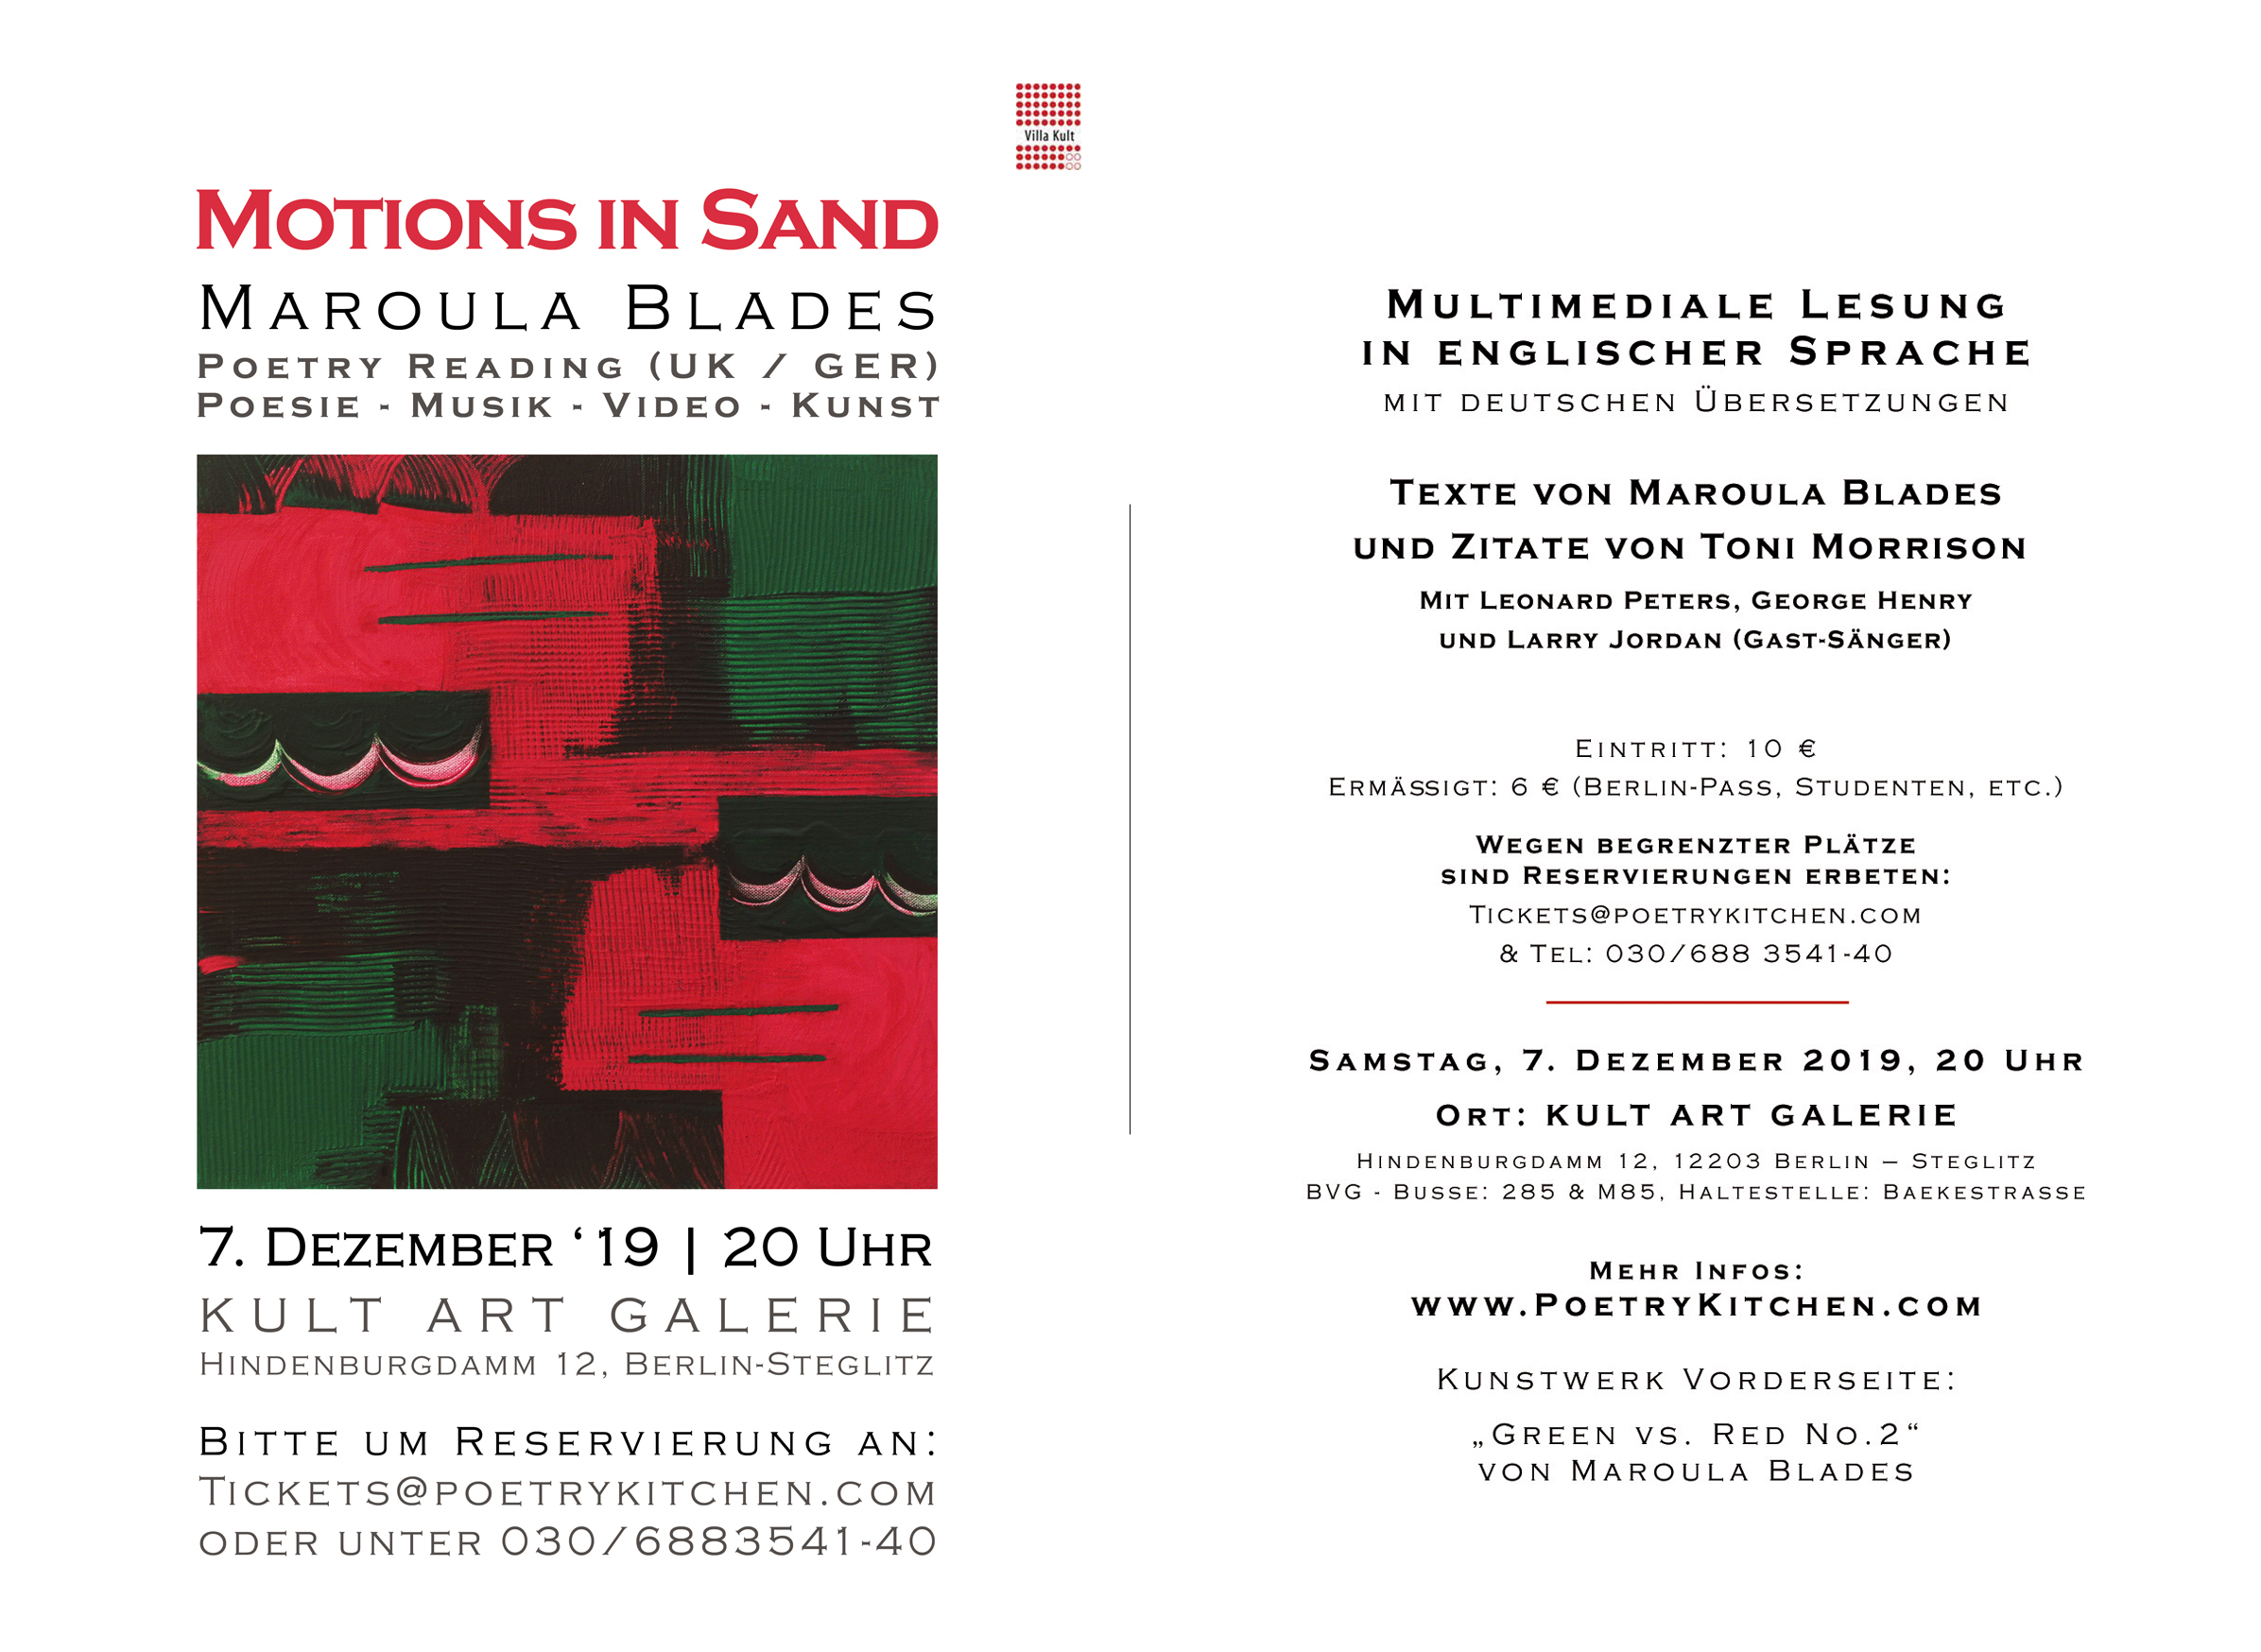 email flyer - Maroula Blades - MOTIONS IN SAND